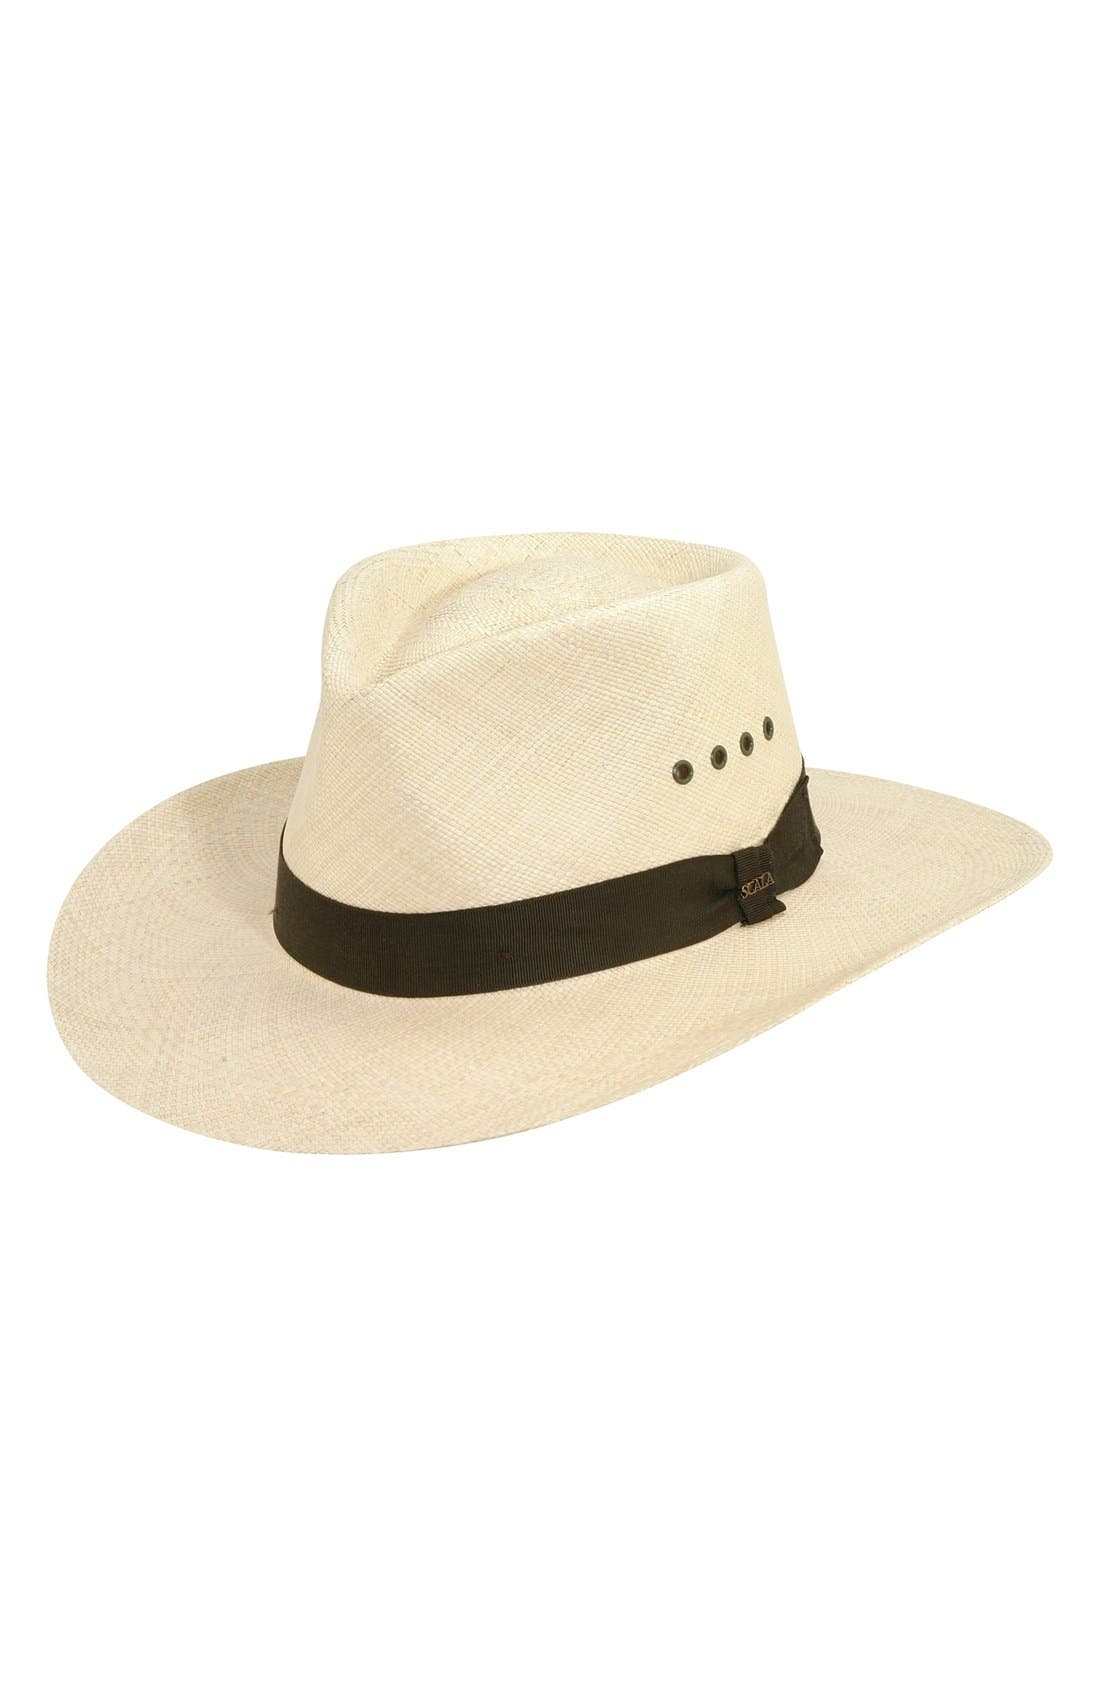 Straw Outback Hat,                             Main thumbnail 1, color,